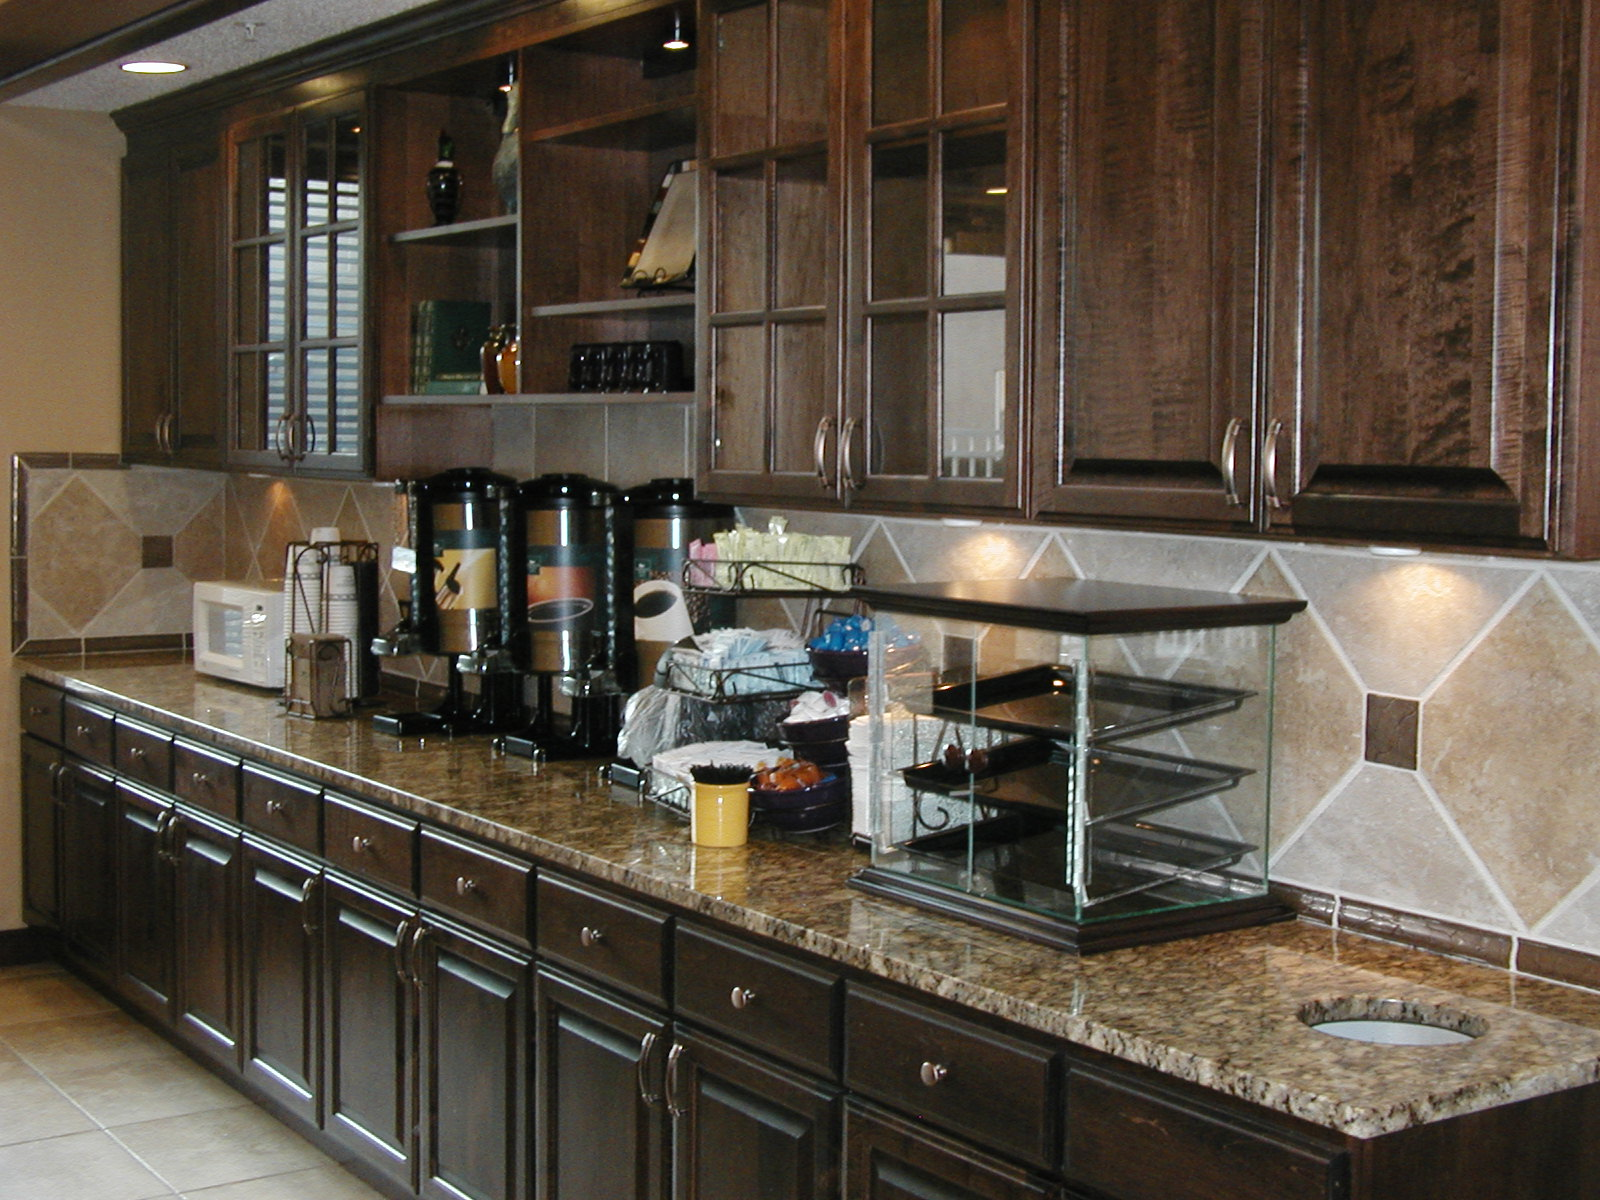 Cabinet Builders In Topeka Area. Located In Overbrook And Serving Topeka  And Northeast Kansas For Over 25 Years. Zeckser Custom Cabinets Specializes  In ...